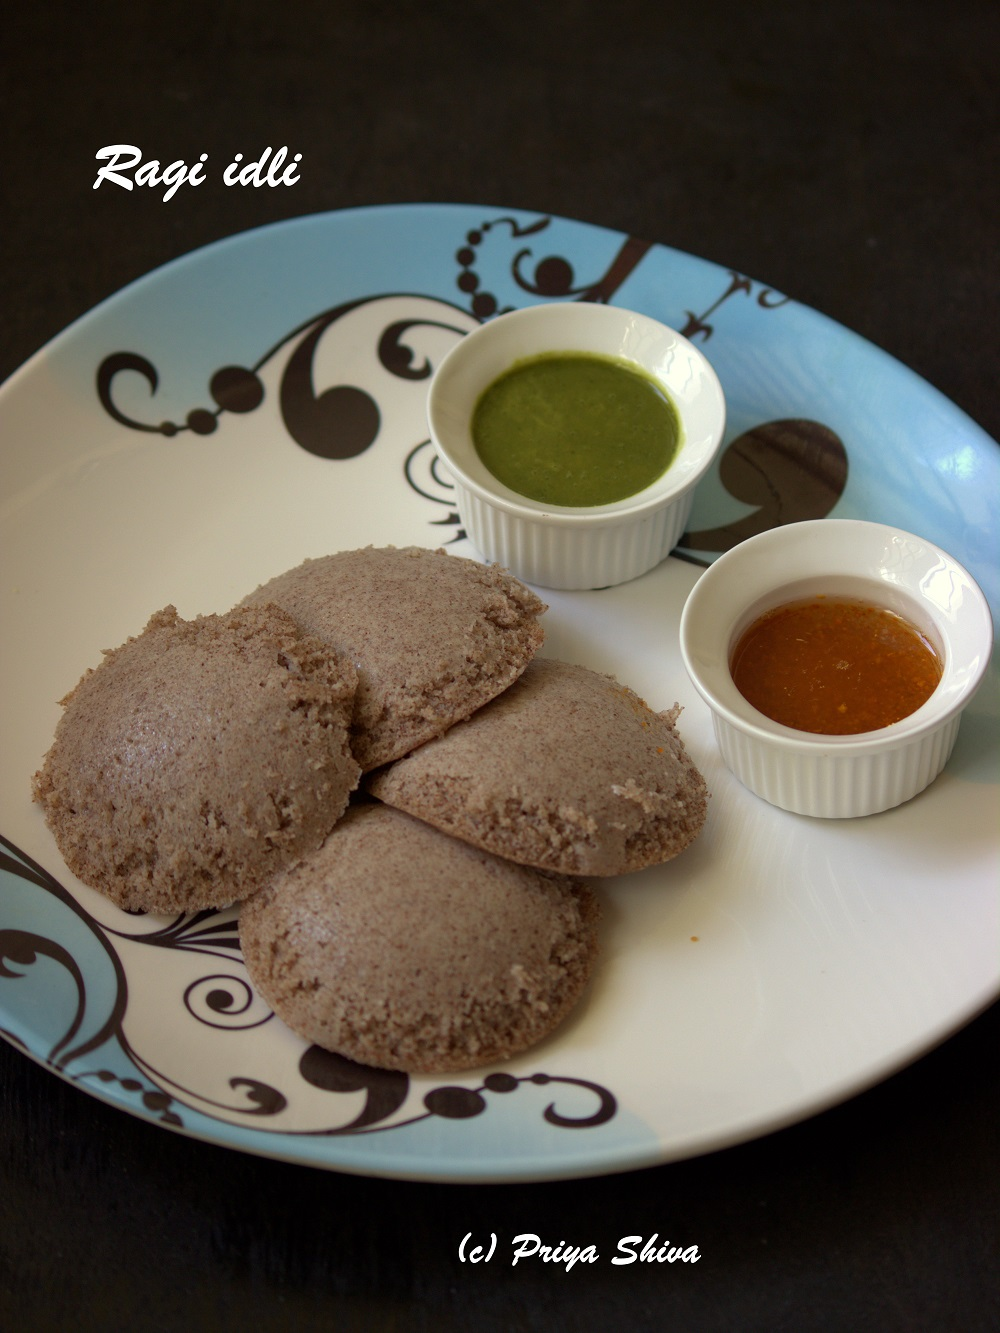 gluten free, oil free and made with finger millet flour